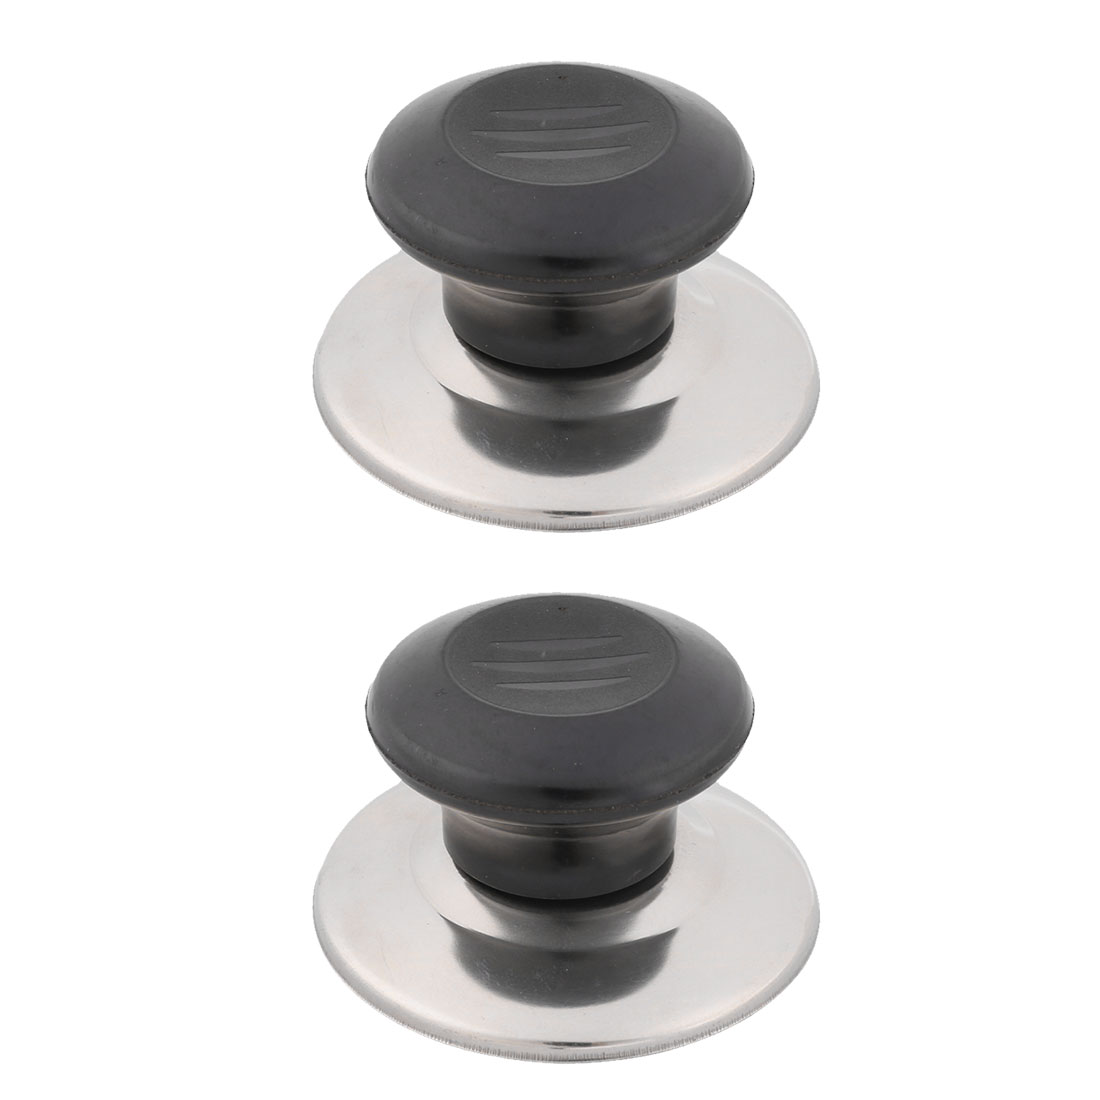 Home Kitchen Cookware Round Cooking Tool Replacement Cover Pan Pot Lid Knob 2 Pcs